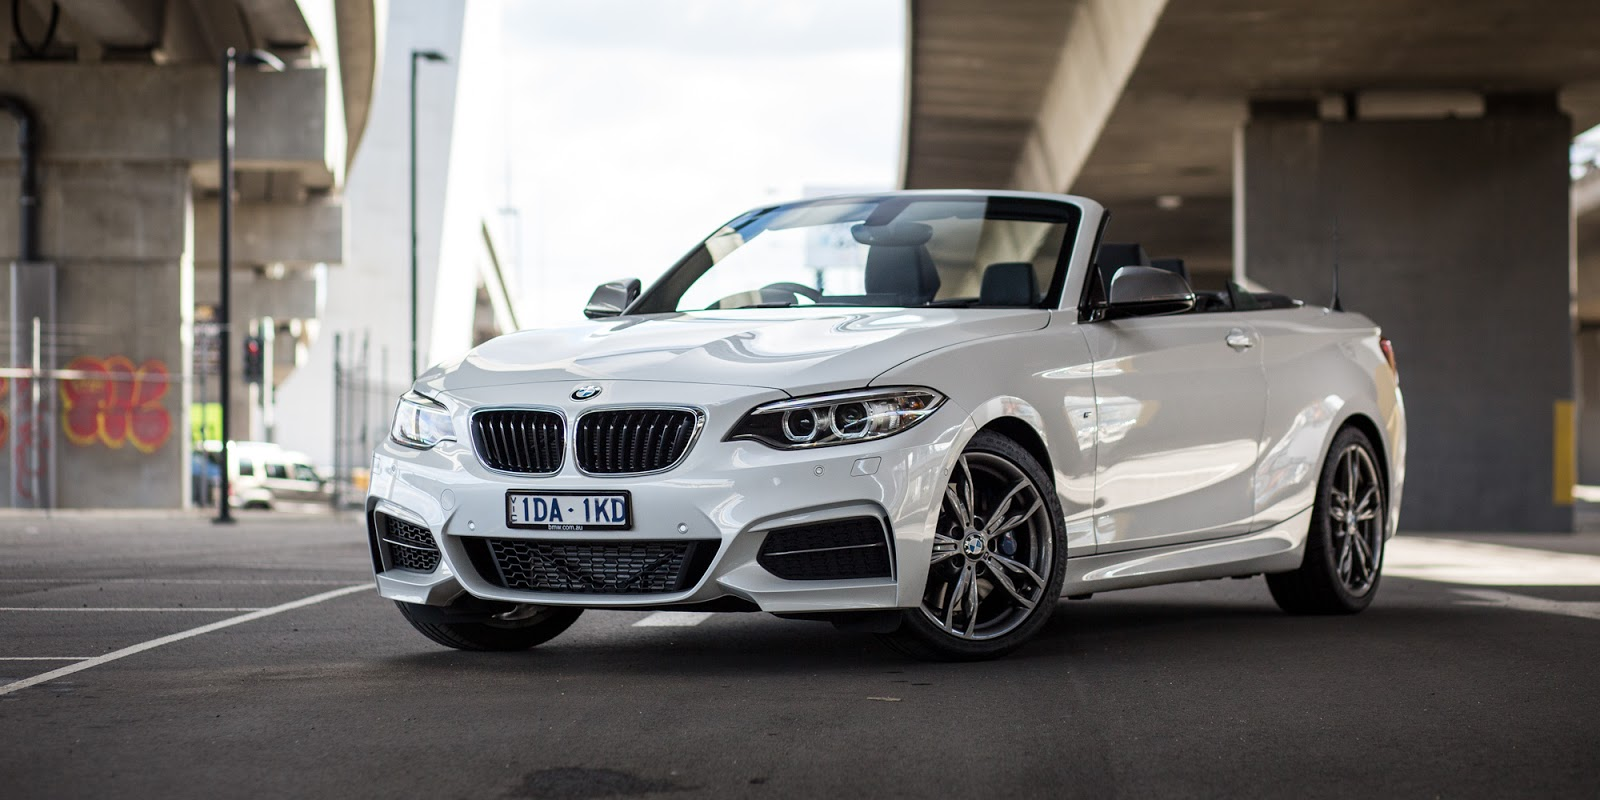 Bmw M235i Convertible Review Driving An Execution Auto Like The For A Survey Is Not So Much Science But Rather More Verse